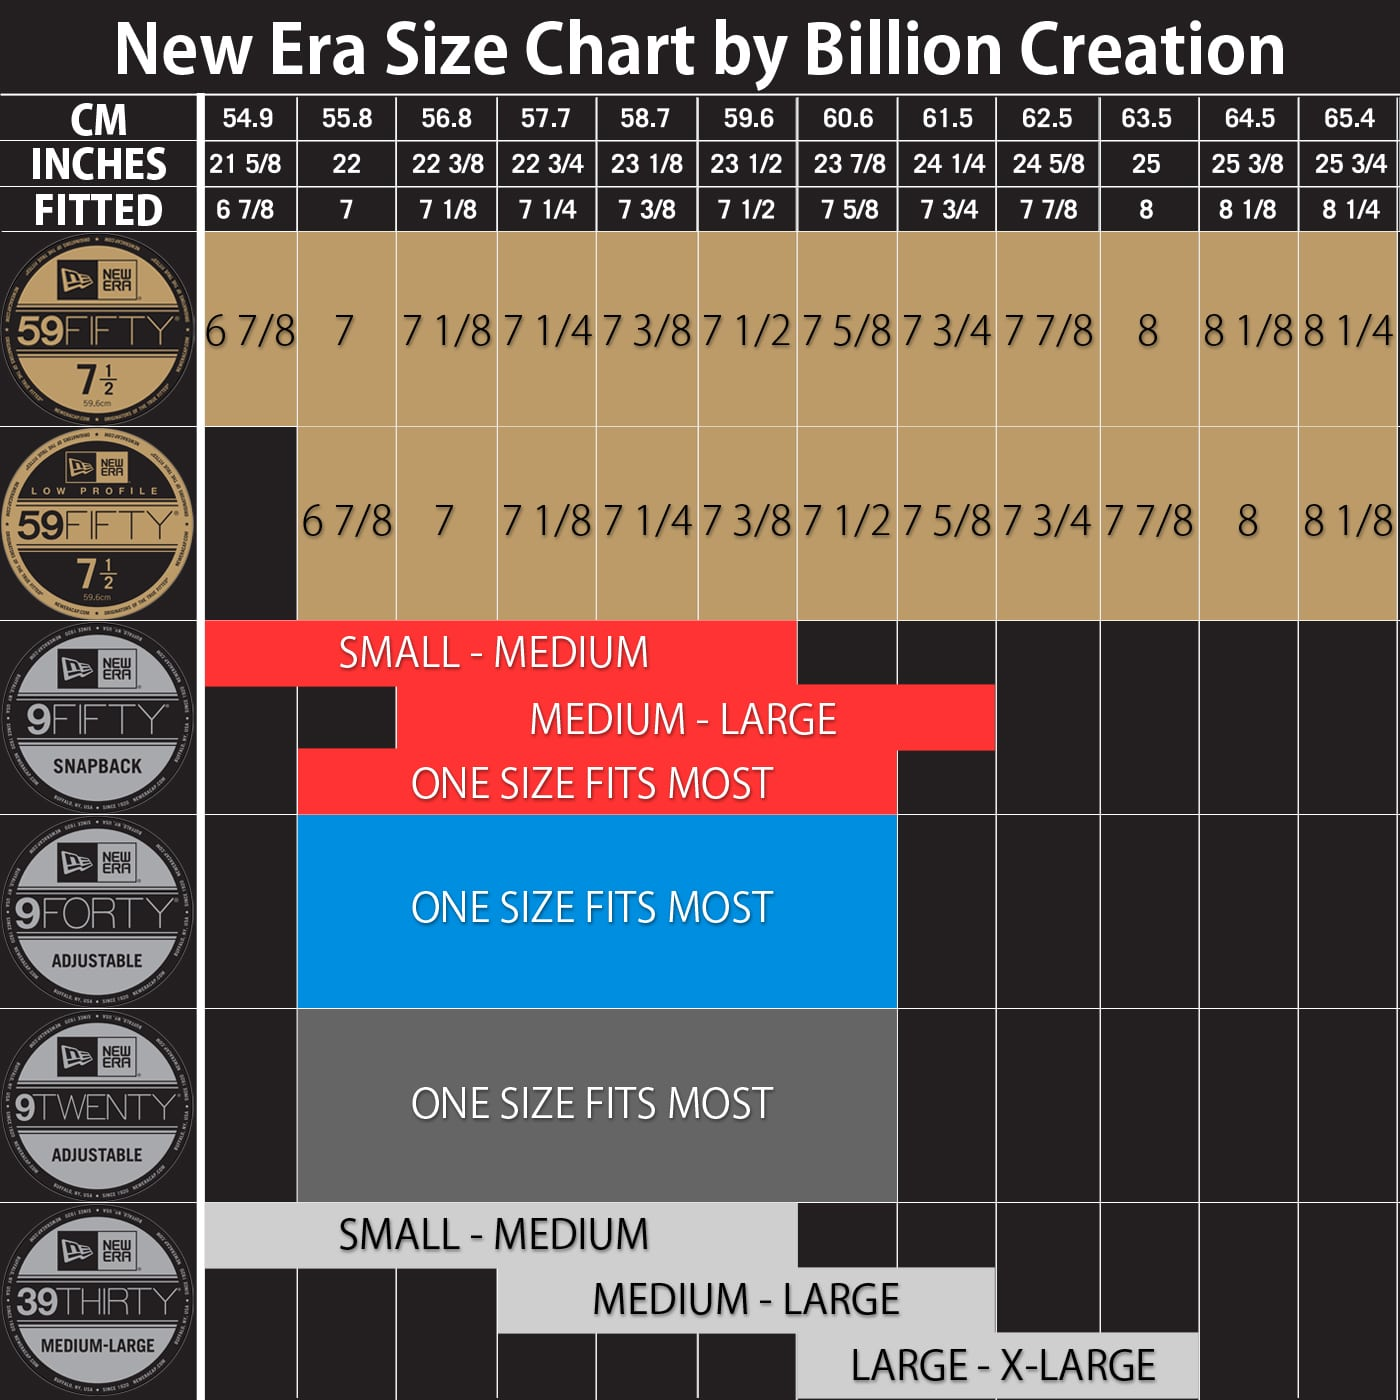 1 6 7 8 New Era Hat Sizes The Ultimate New Era Cap Size Guide